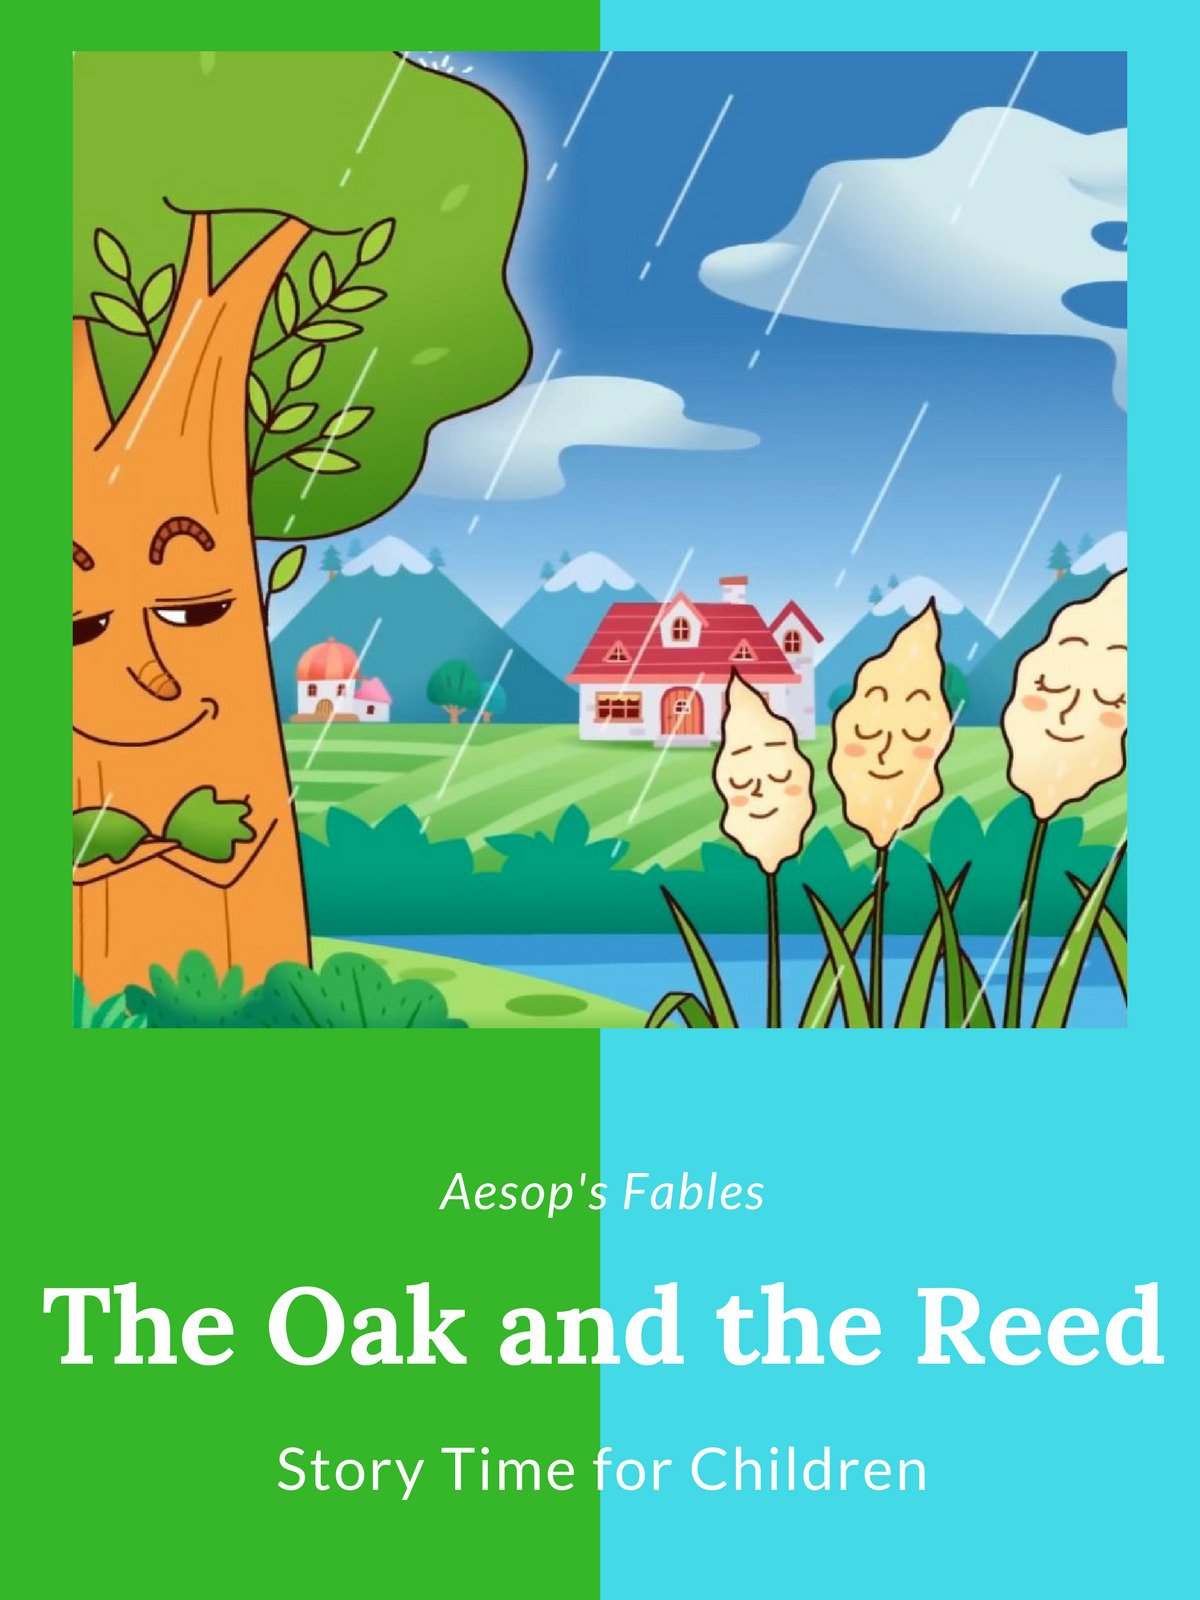 The Oak and the Reed